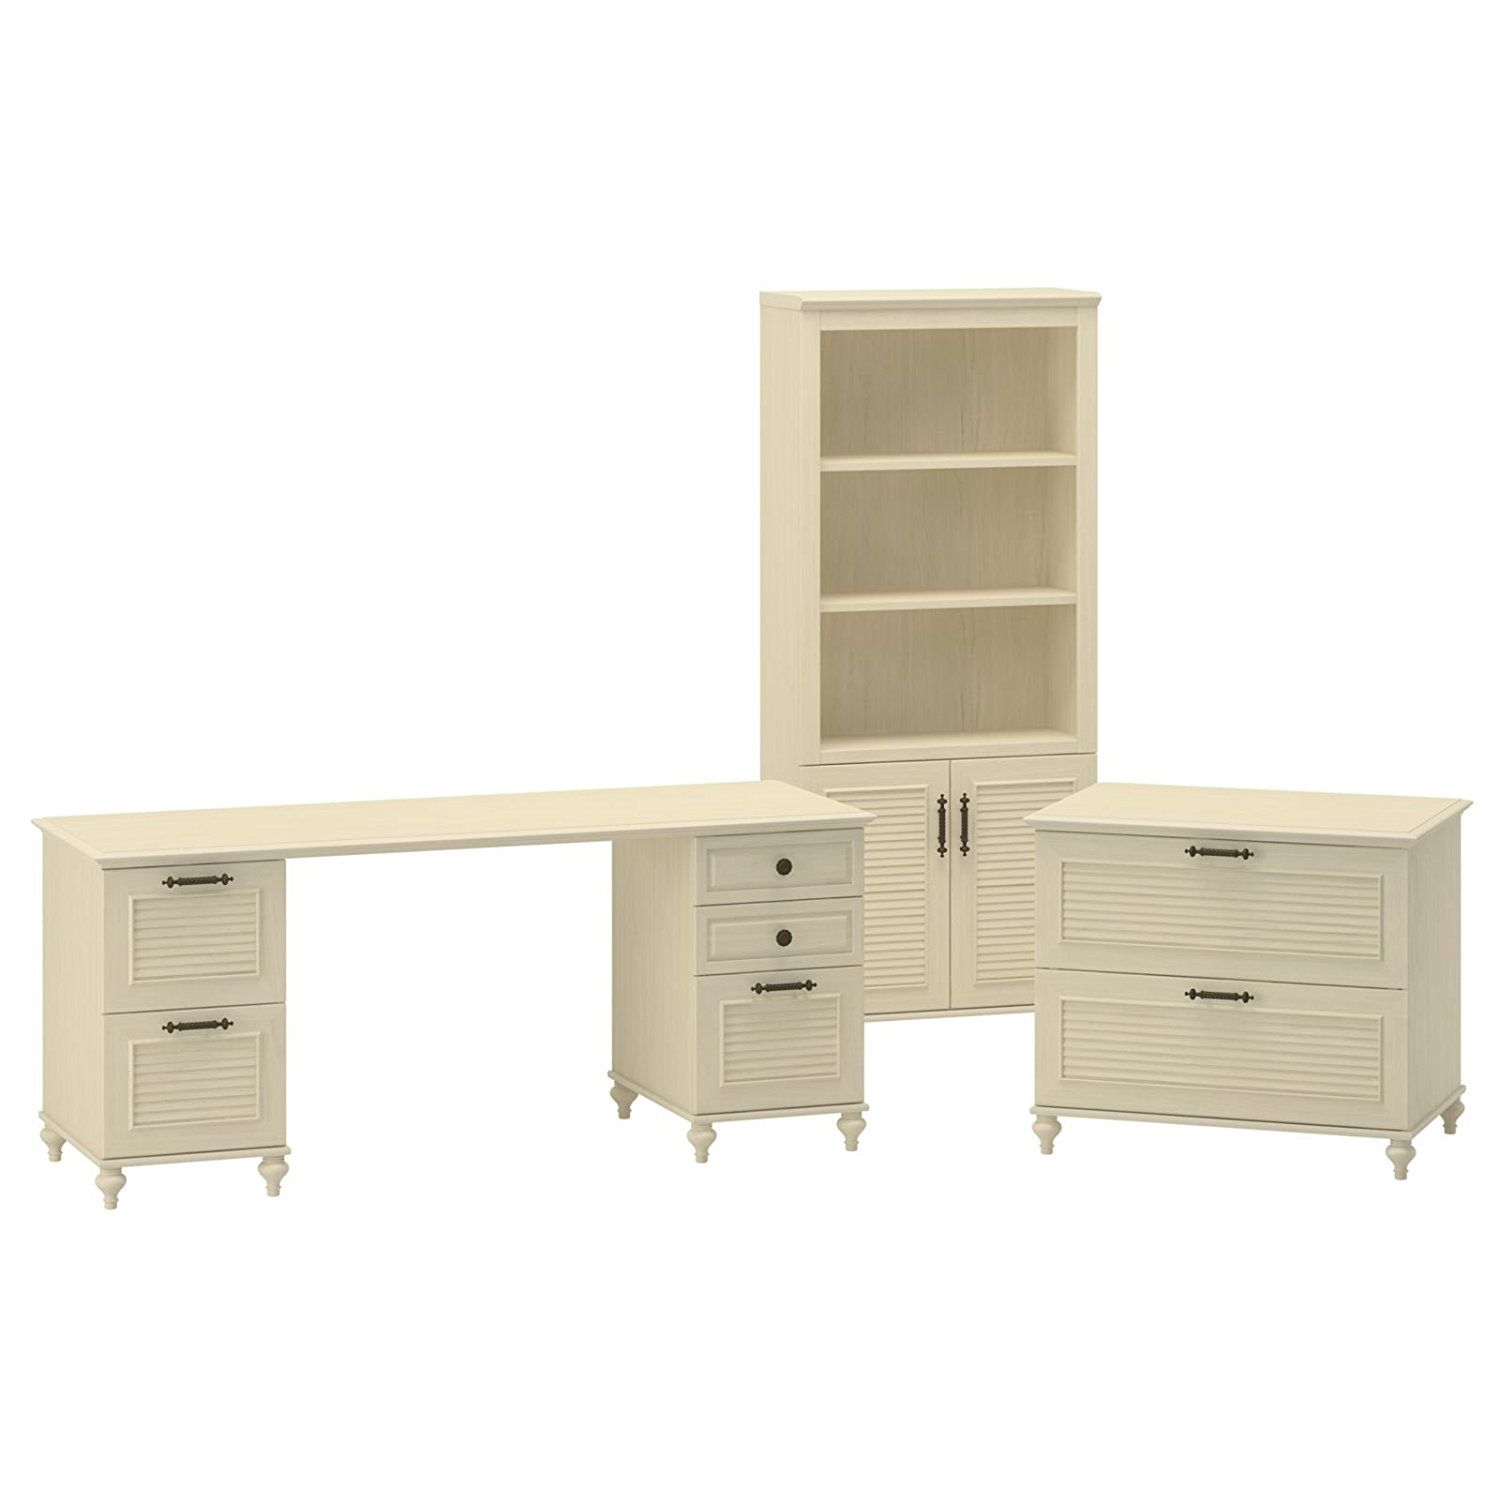 2019 Kathy Ireland Office Furniture   Ashley Furniture Home Office Check  More At Http:/